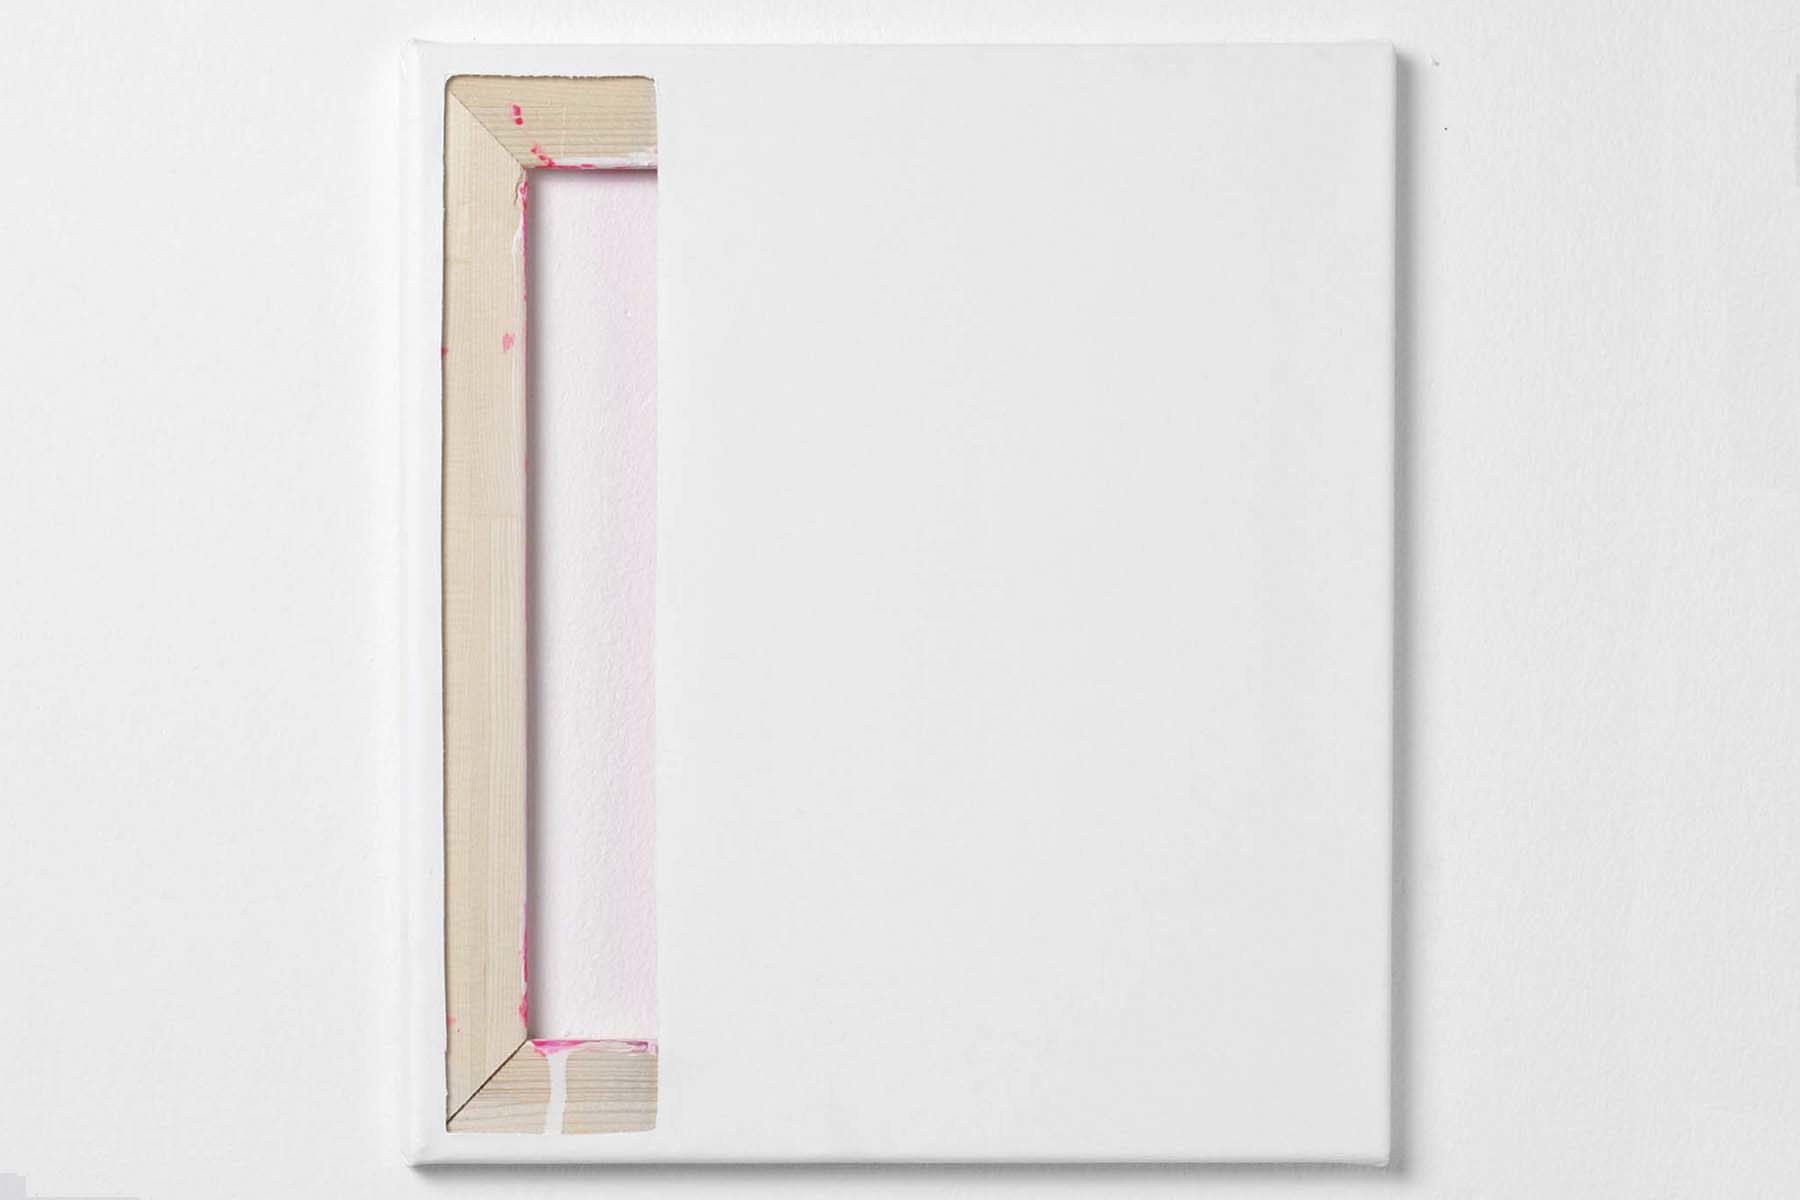 Johanna Binder, GHI Raum, 2014, acrylic on canvas, 40 x 36 cm